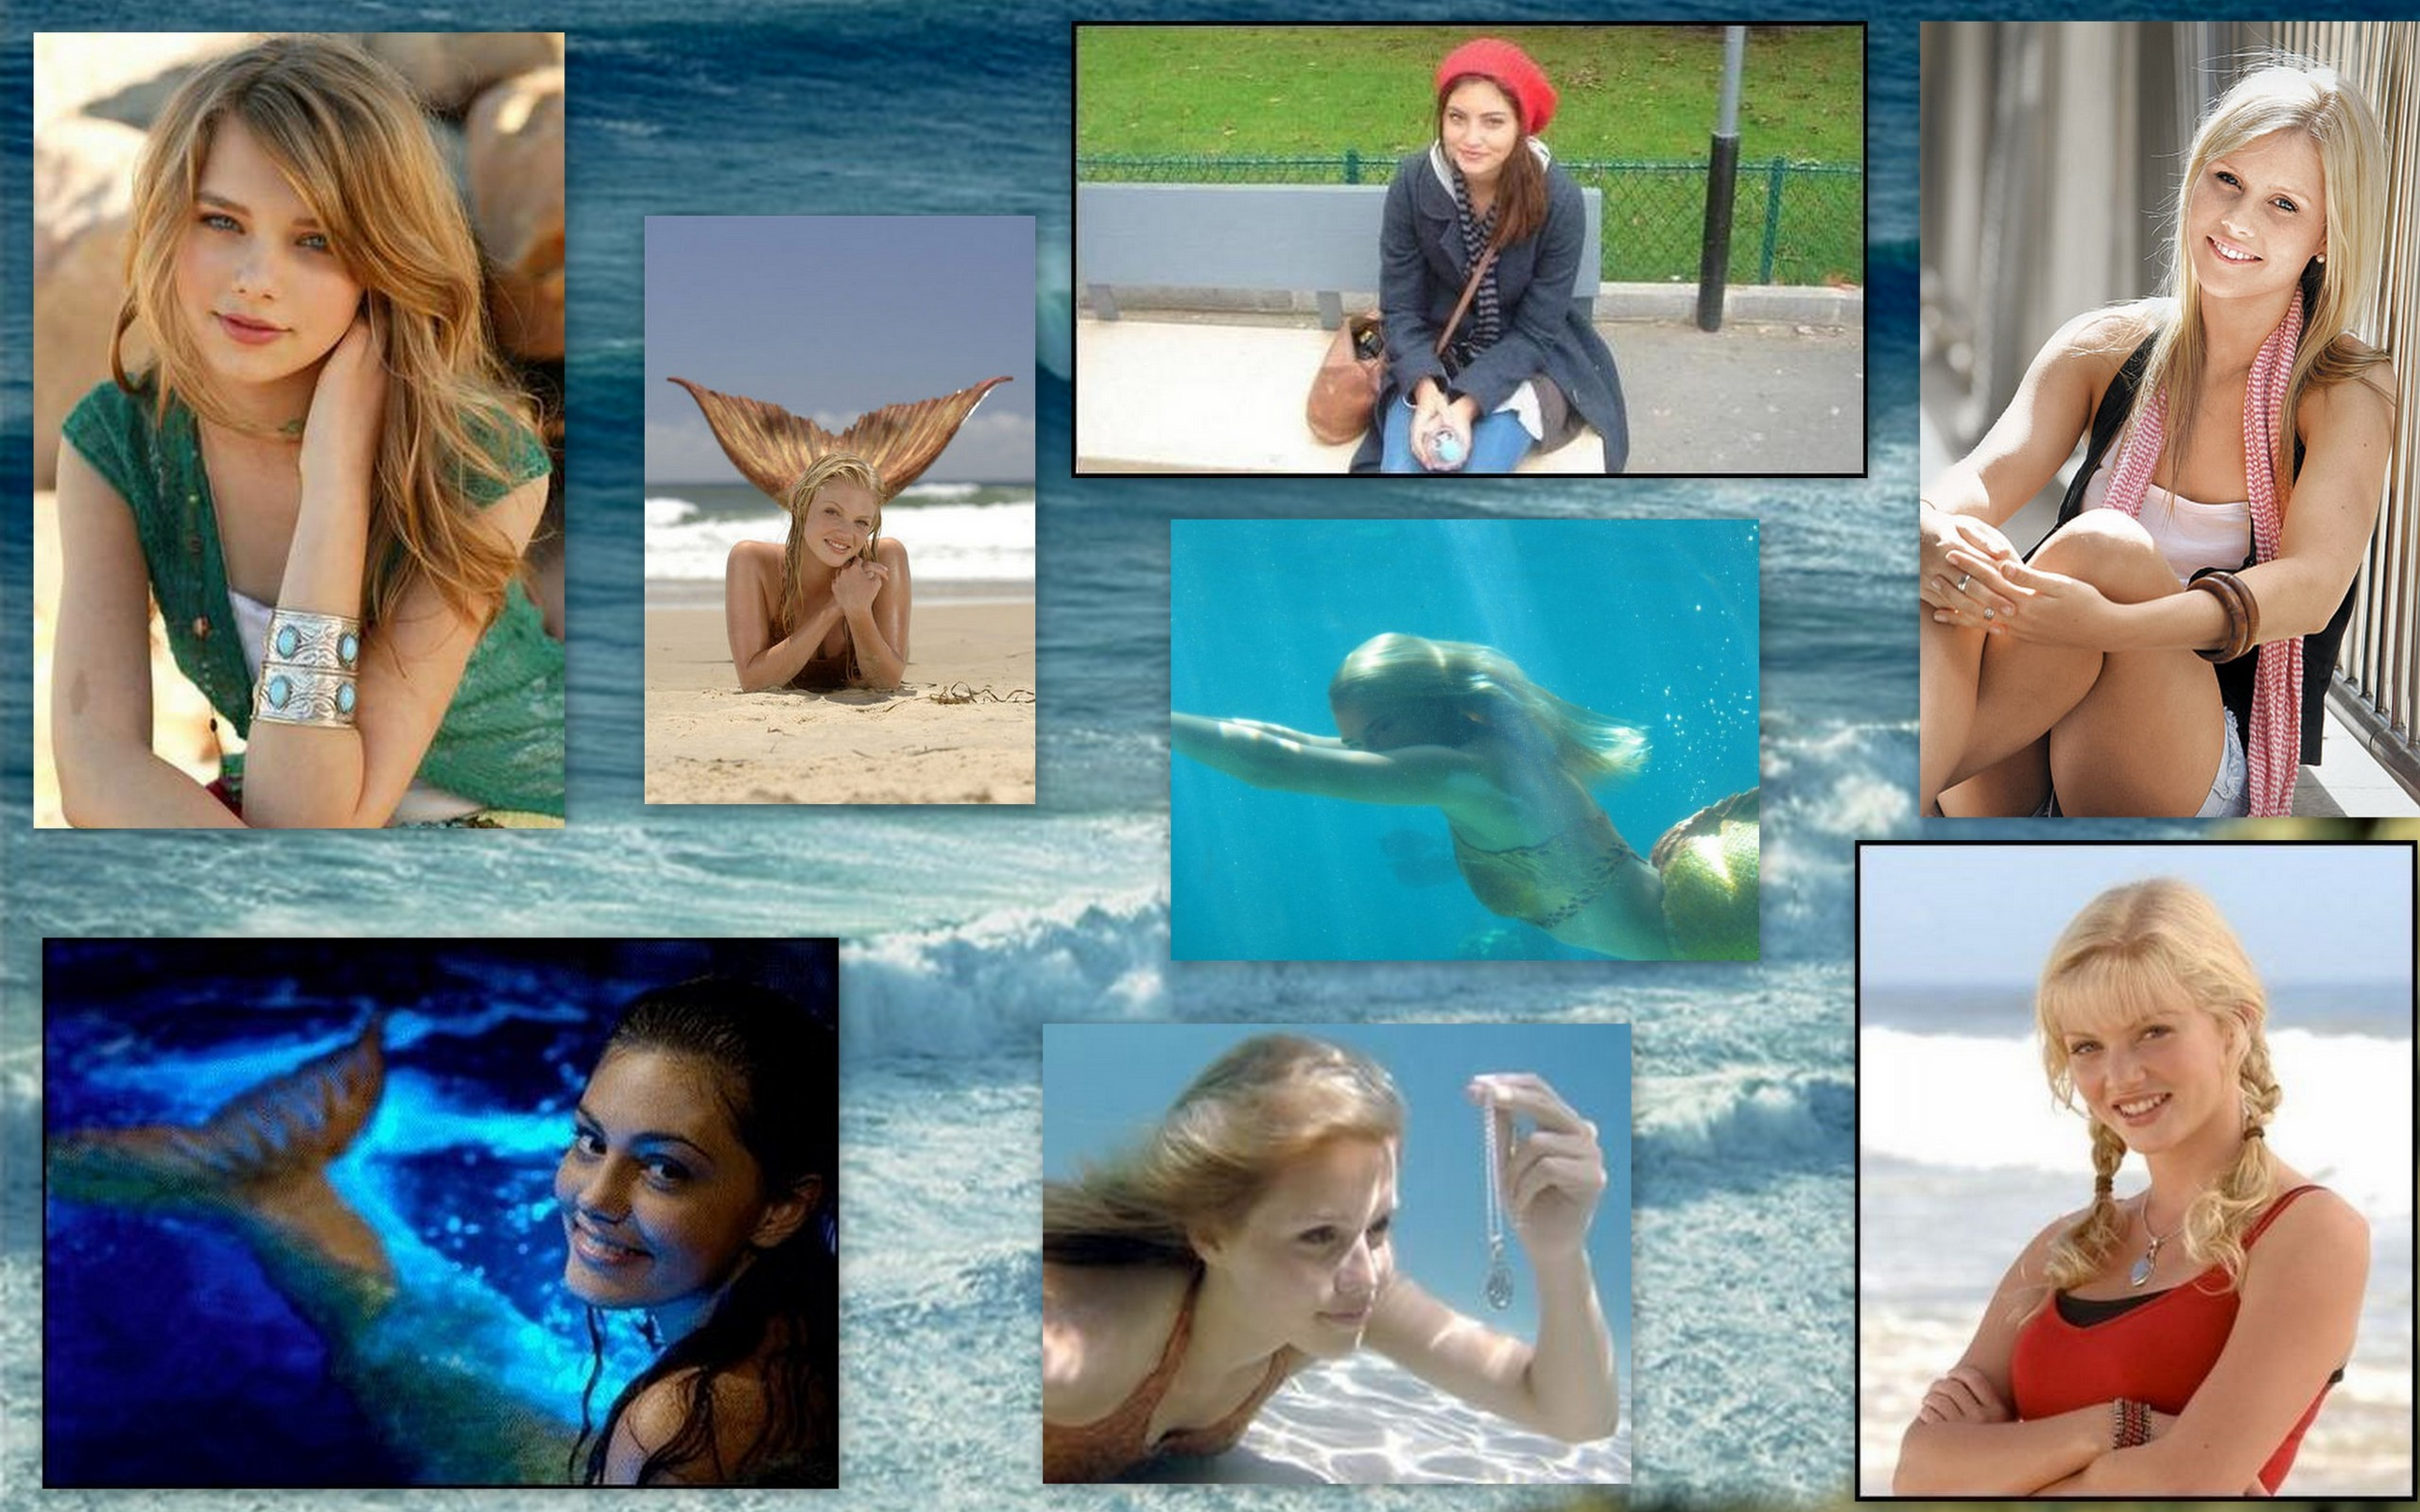 H2o collage h2o just add water wallpaper 8052838 fanpop for H2o just add water season 4